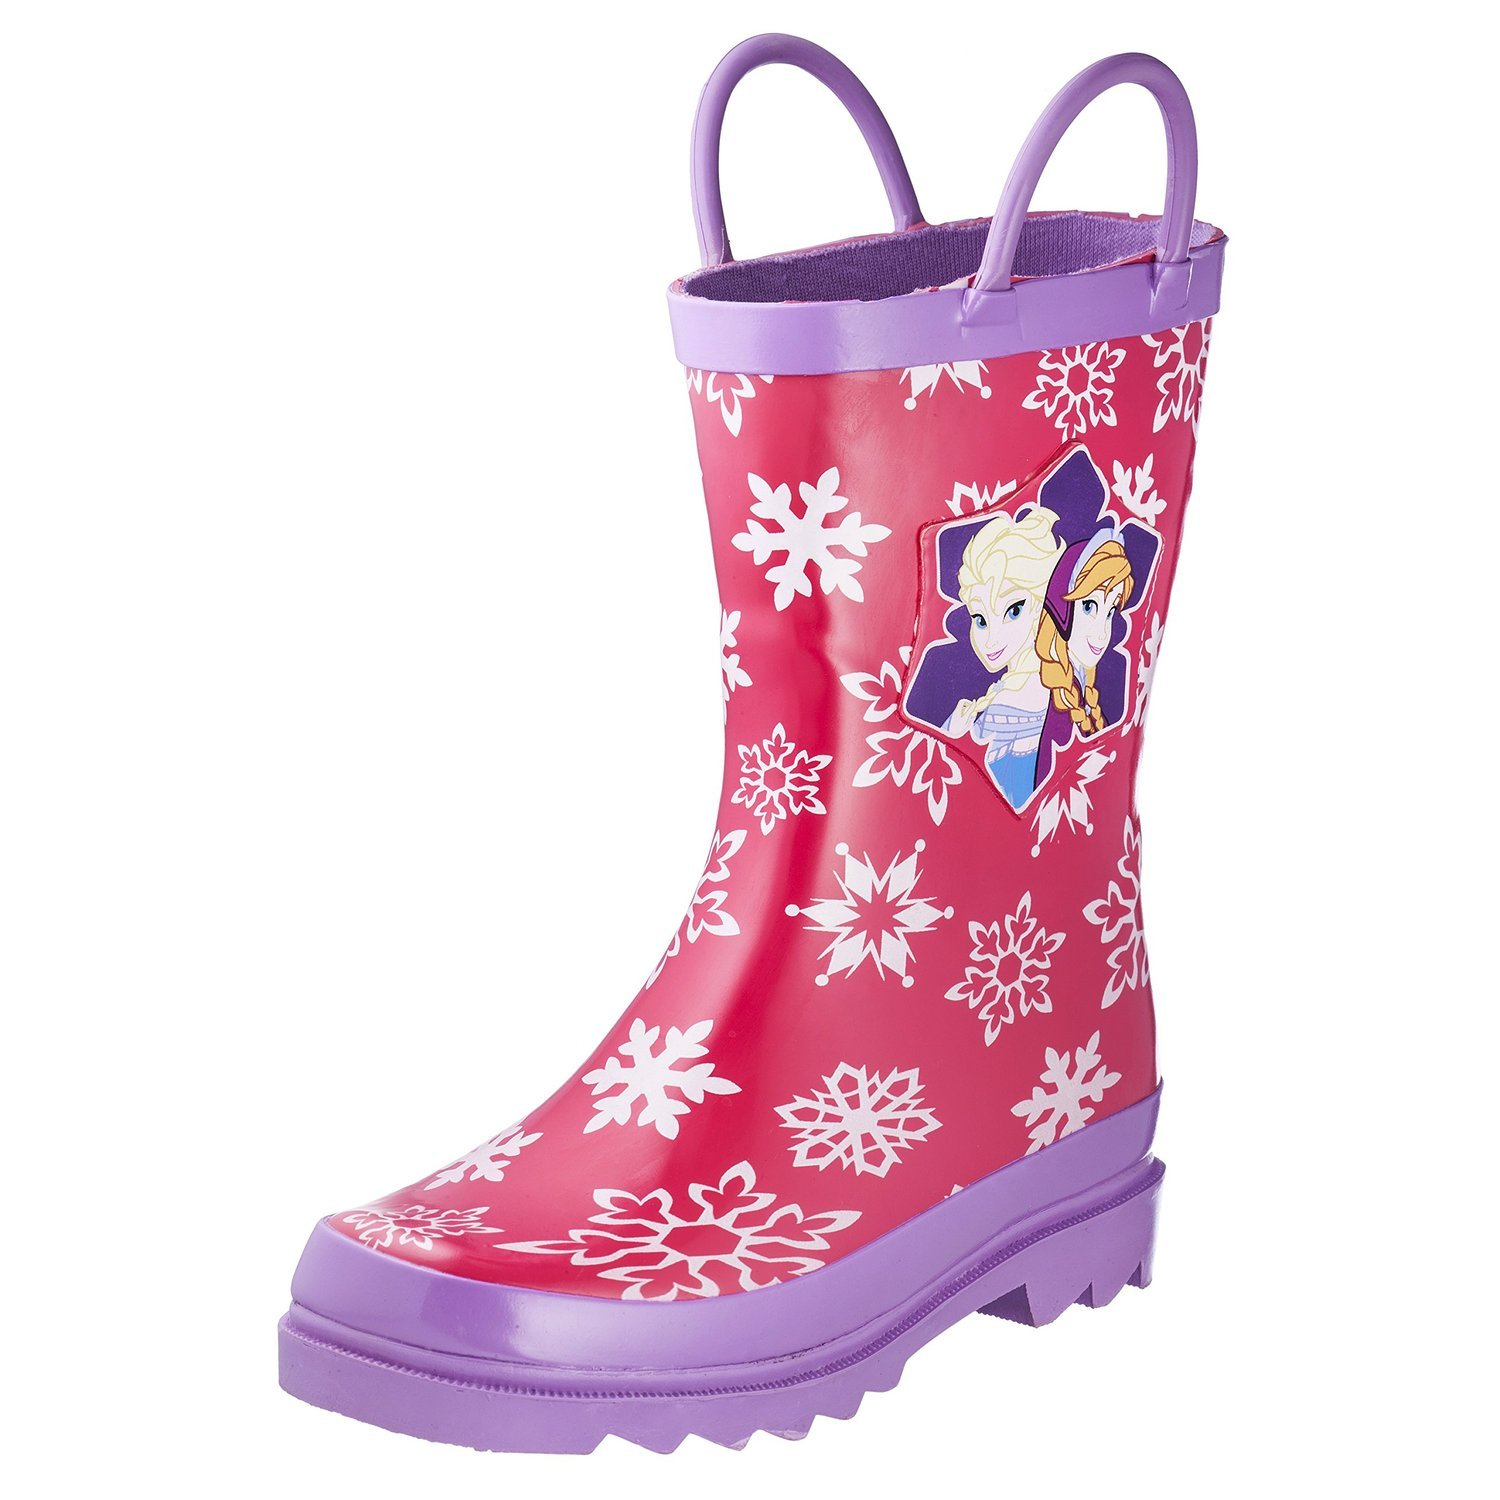 Disney Frozen Girls Anna and Elsa Pink Rain Boots - Size 12 M US Little Kid